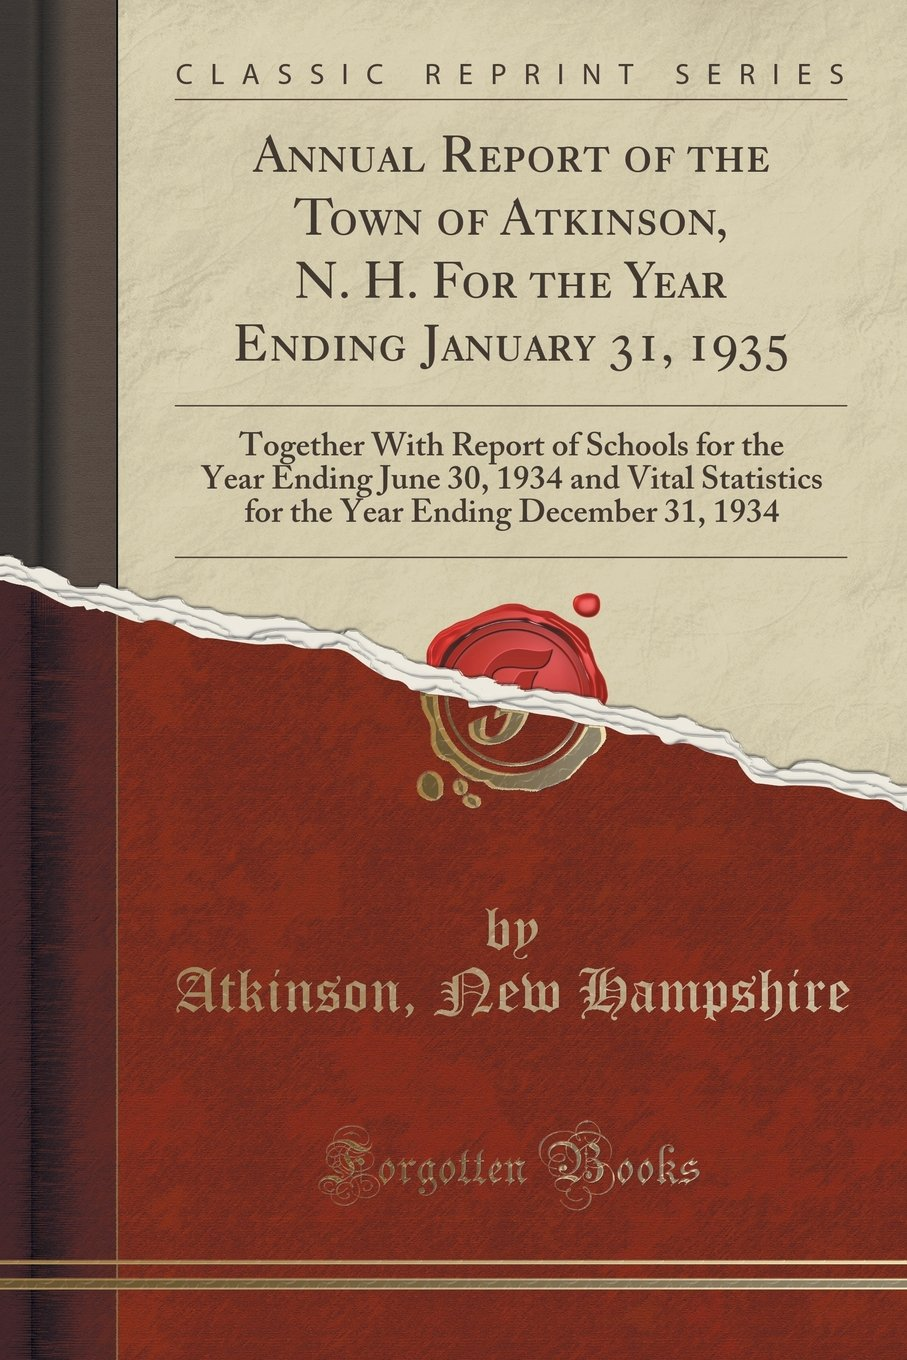 Download Annual Report of the Town of Atkinson, N. H. For the Year Ending January 31, 1935: Together With Report of Schools for the Year Ending June 30, 1934 ... Ending December 31, 1934 (Classic Reprint) ebook